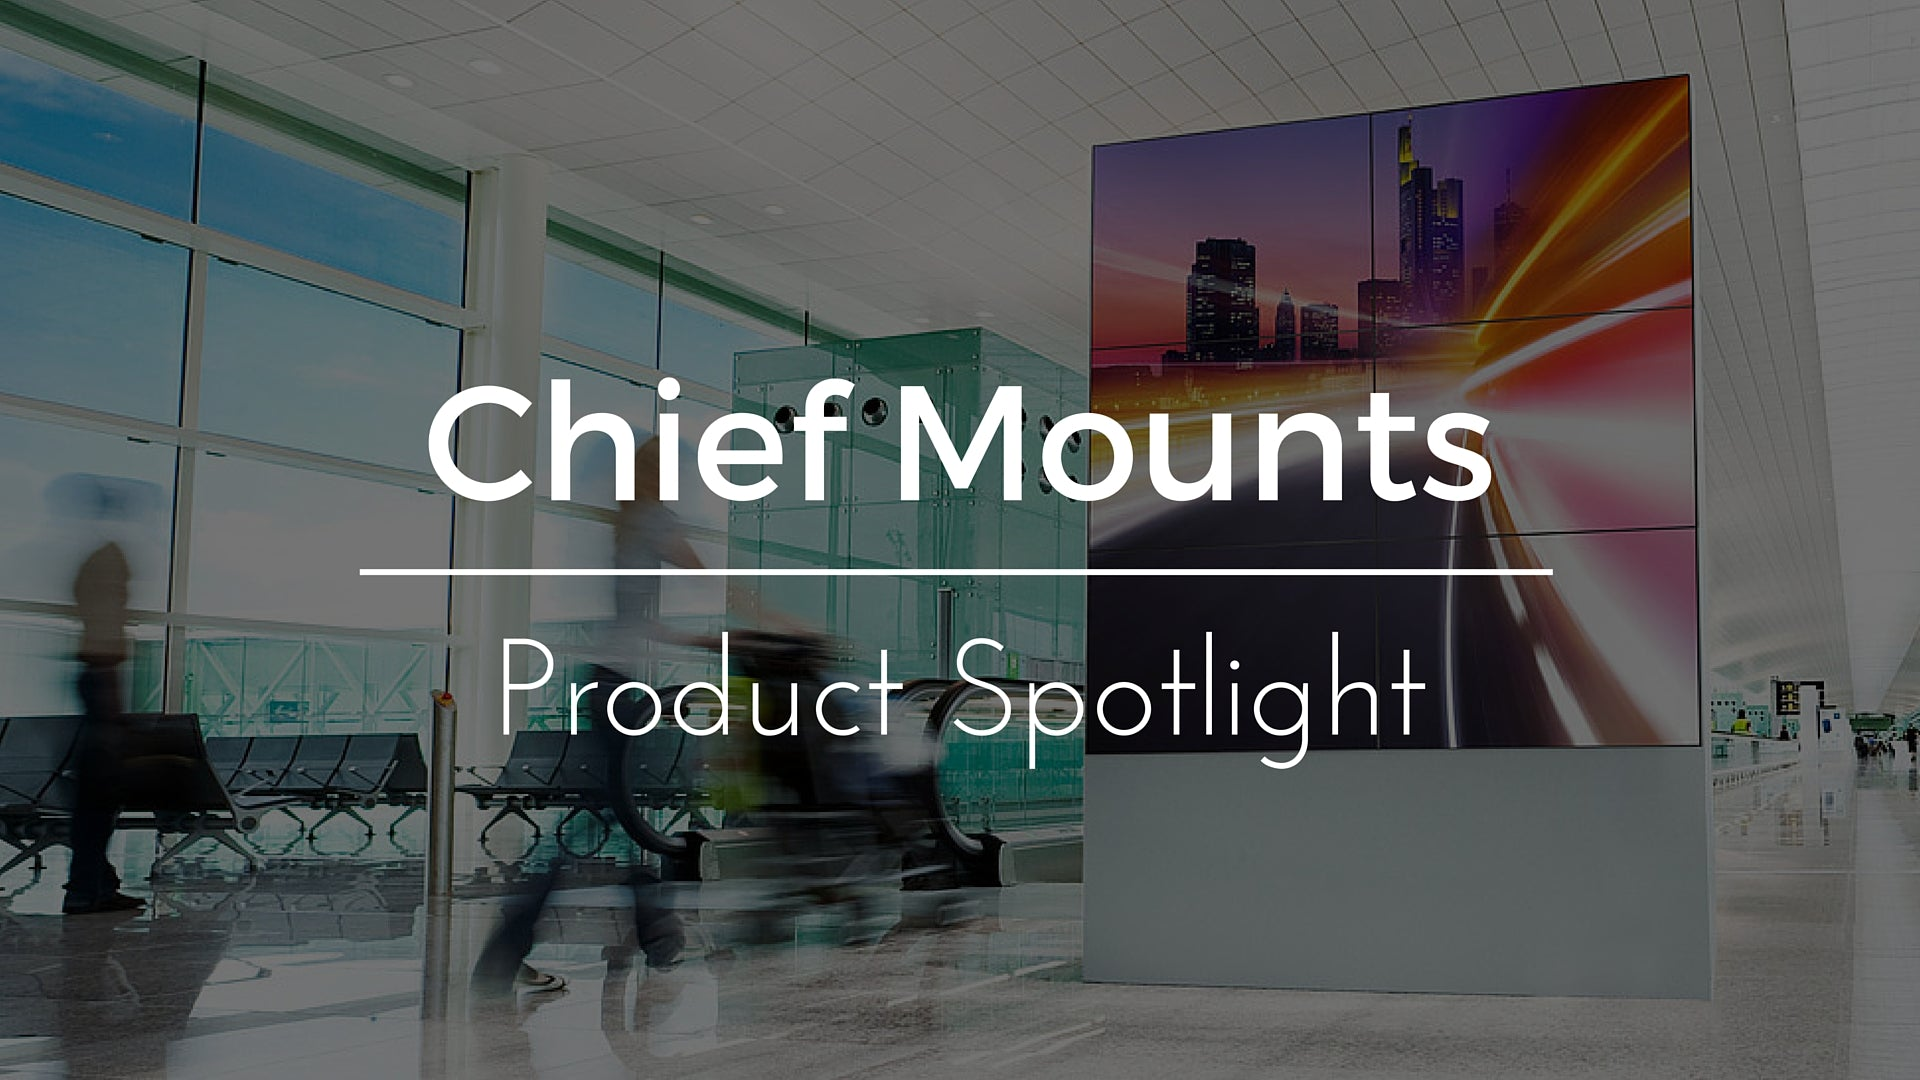 Chief Mounts Product Spotlight